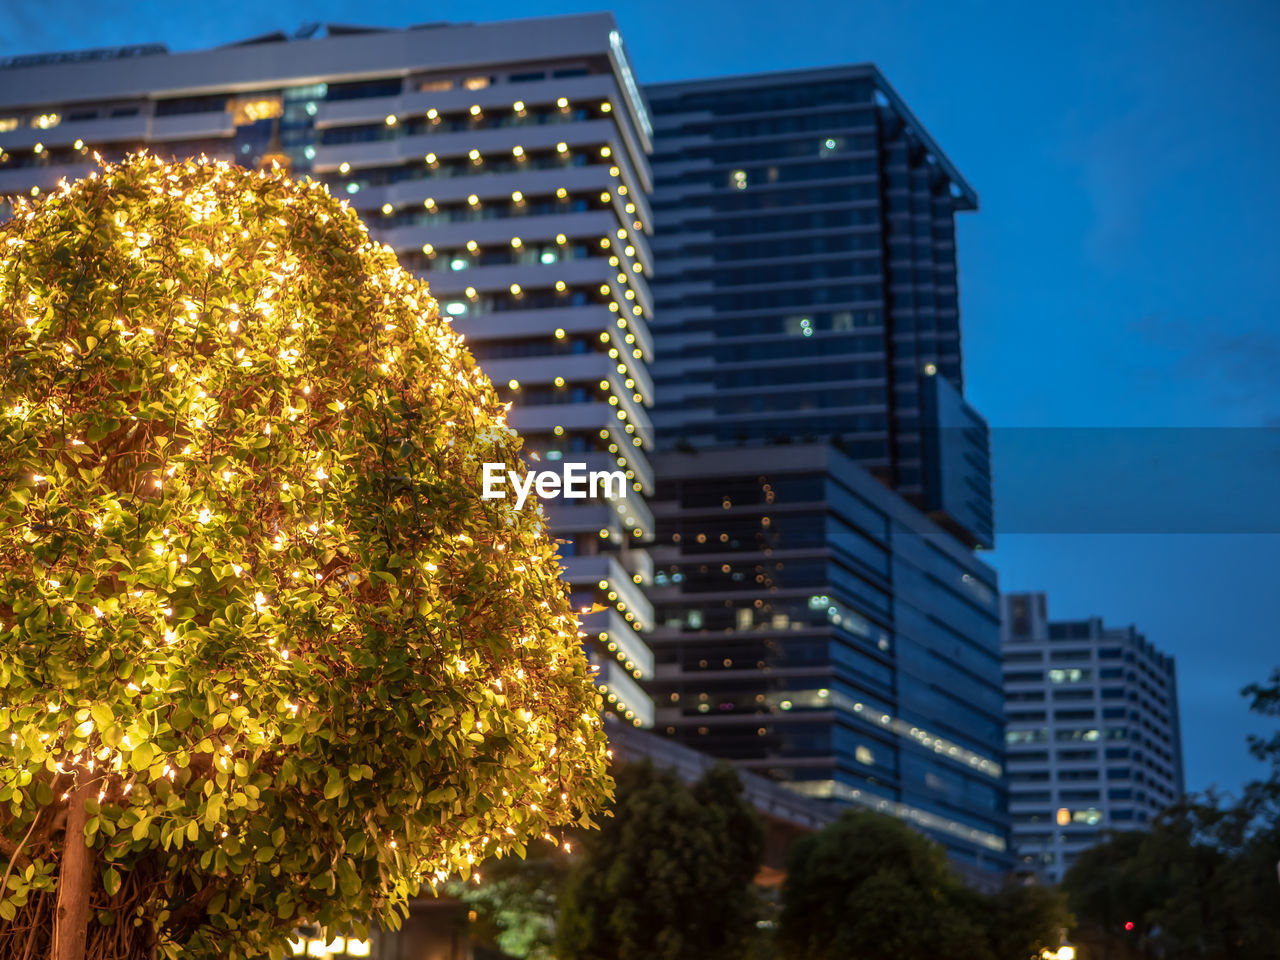 building exterior, built structure, illuminated, tree, architecture, building, plant, city, no people, nature, sky, modern, low angle view, dusk, outdoors, office building exterior, night, glowing, office, residential district, skyscraper